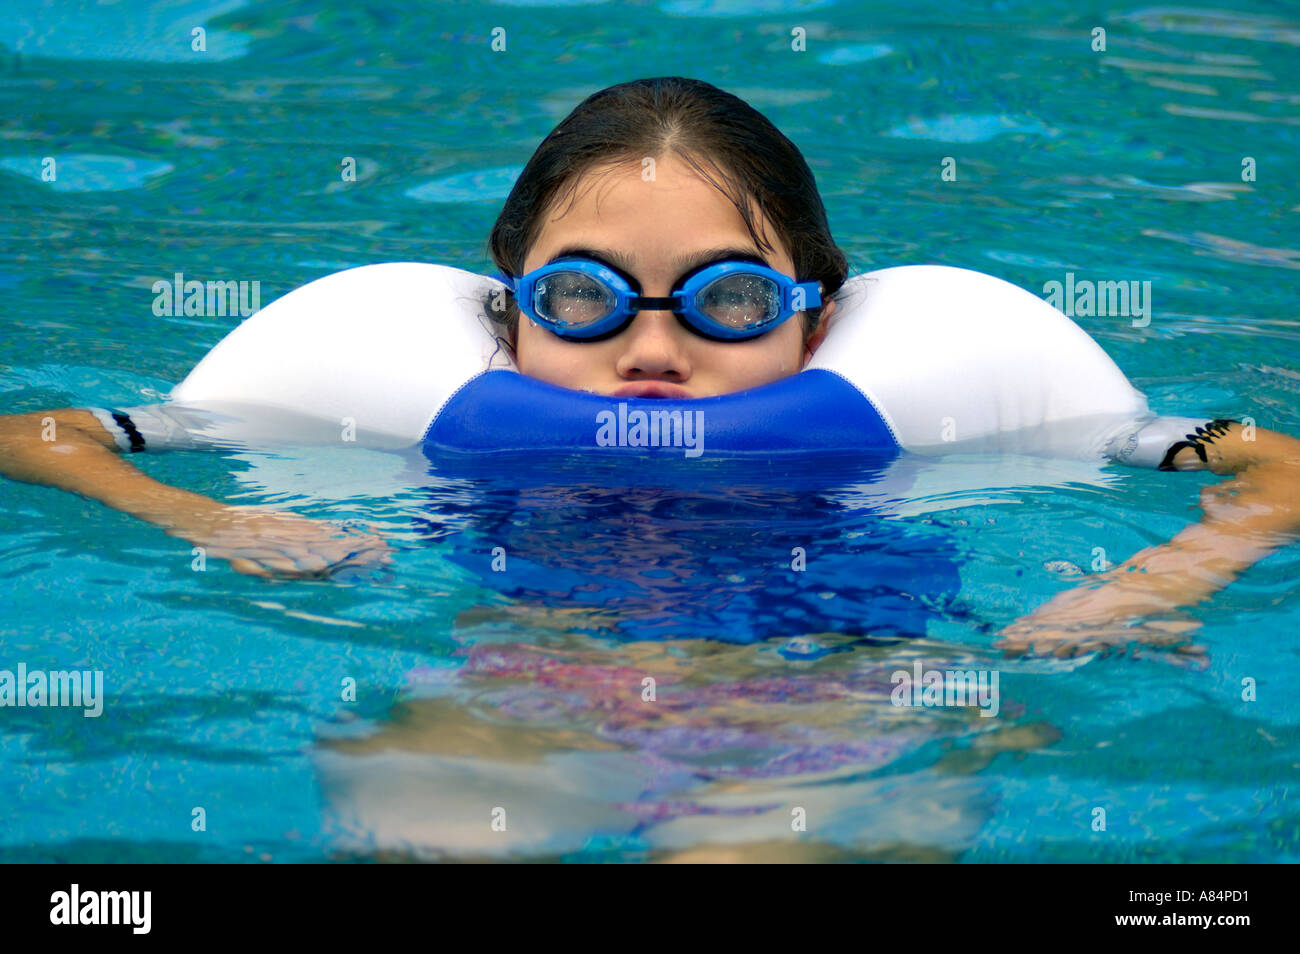 A playful young girl who is wearing googles and a rash guard blows up in the swimming pool  - Stock Image